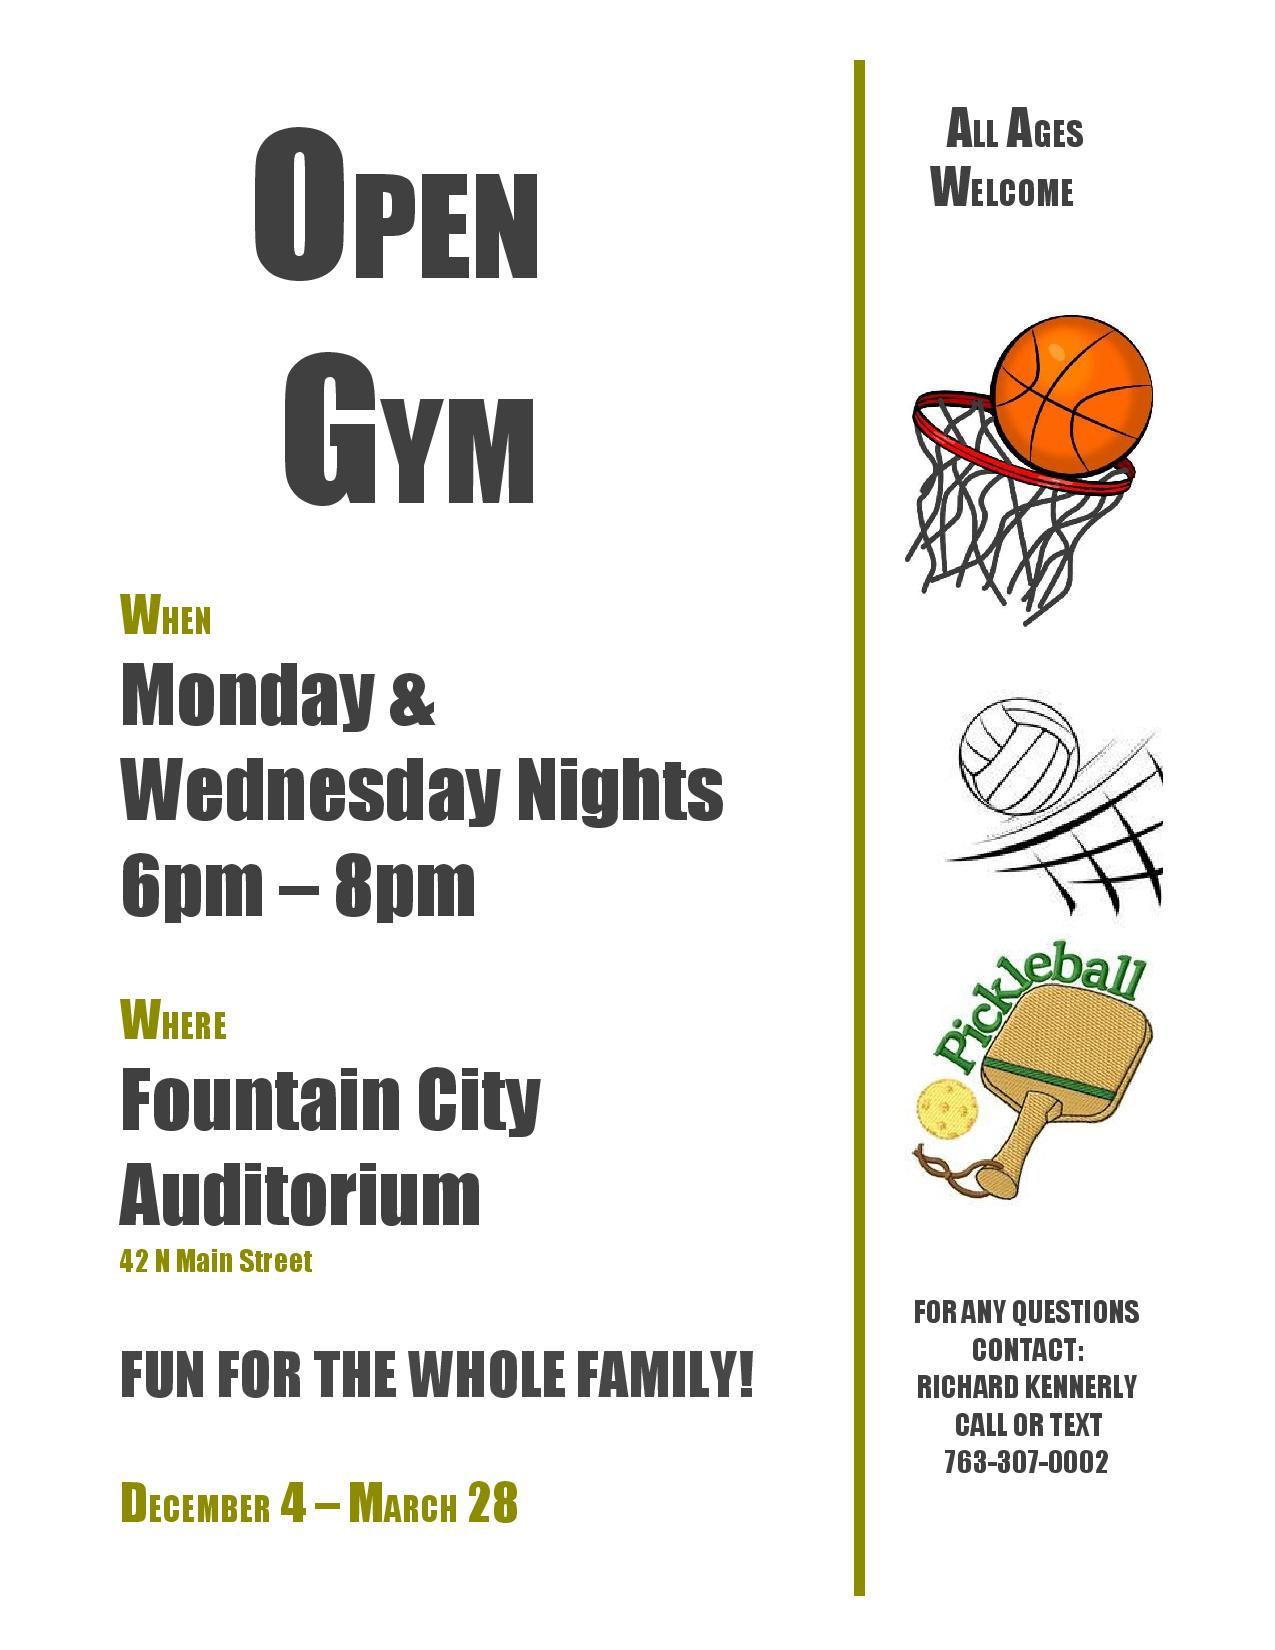 Open Gym Night @ Fountain City Auditorium